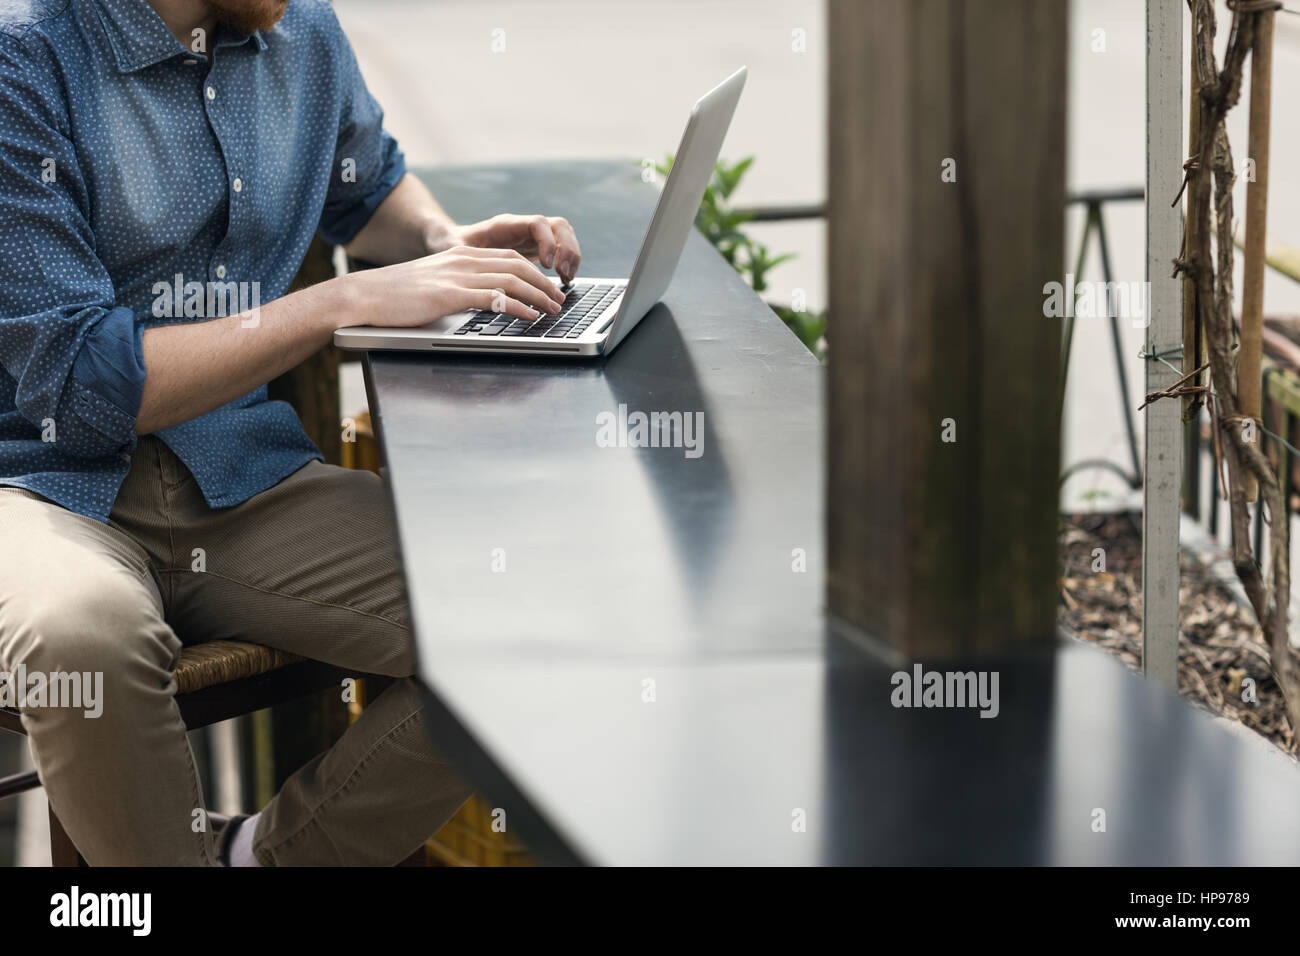 Unrecognizable man using a modern portable computer on an outdoor table, street on background - Stock Image